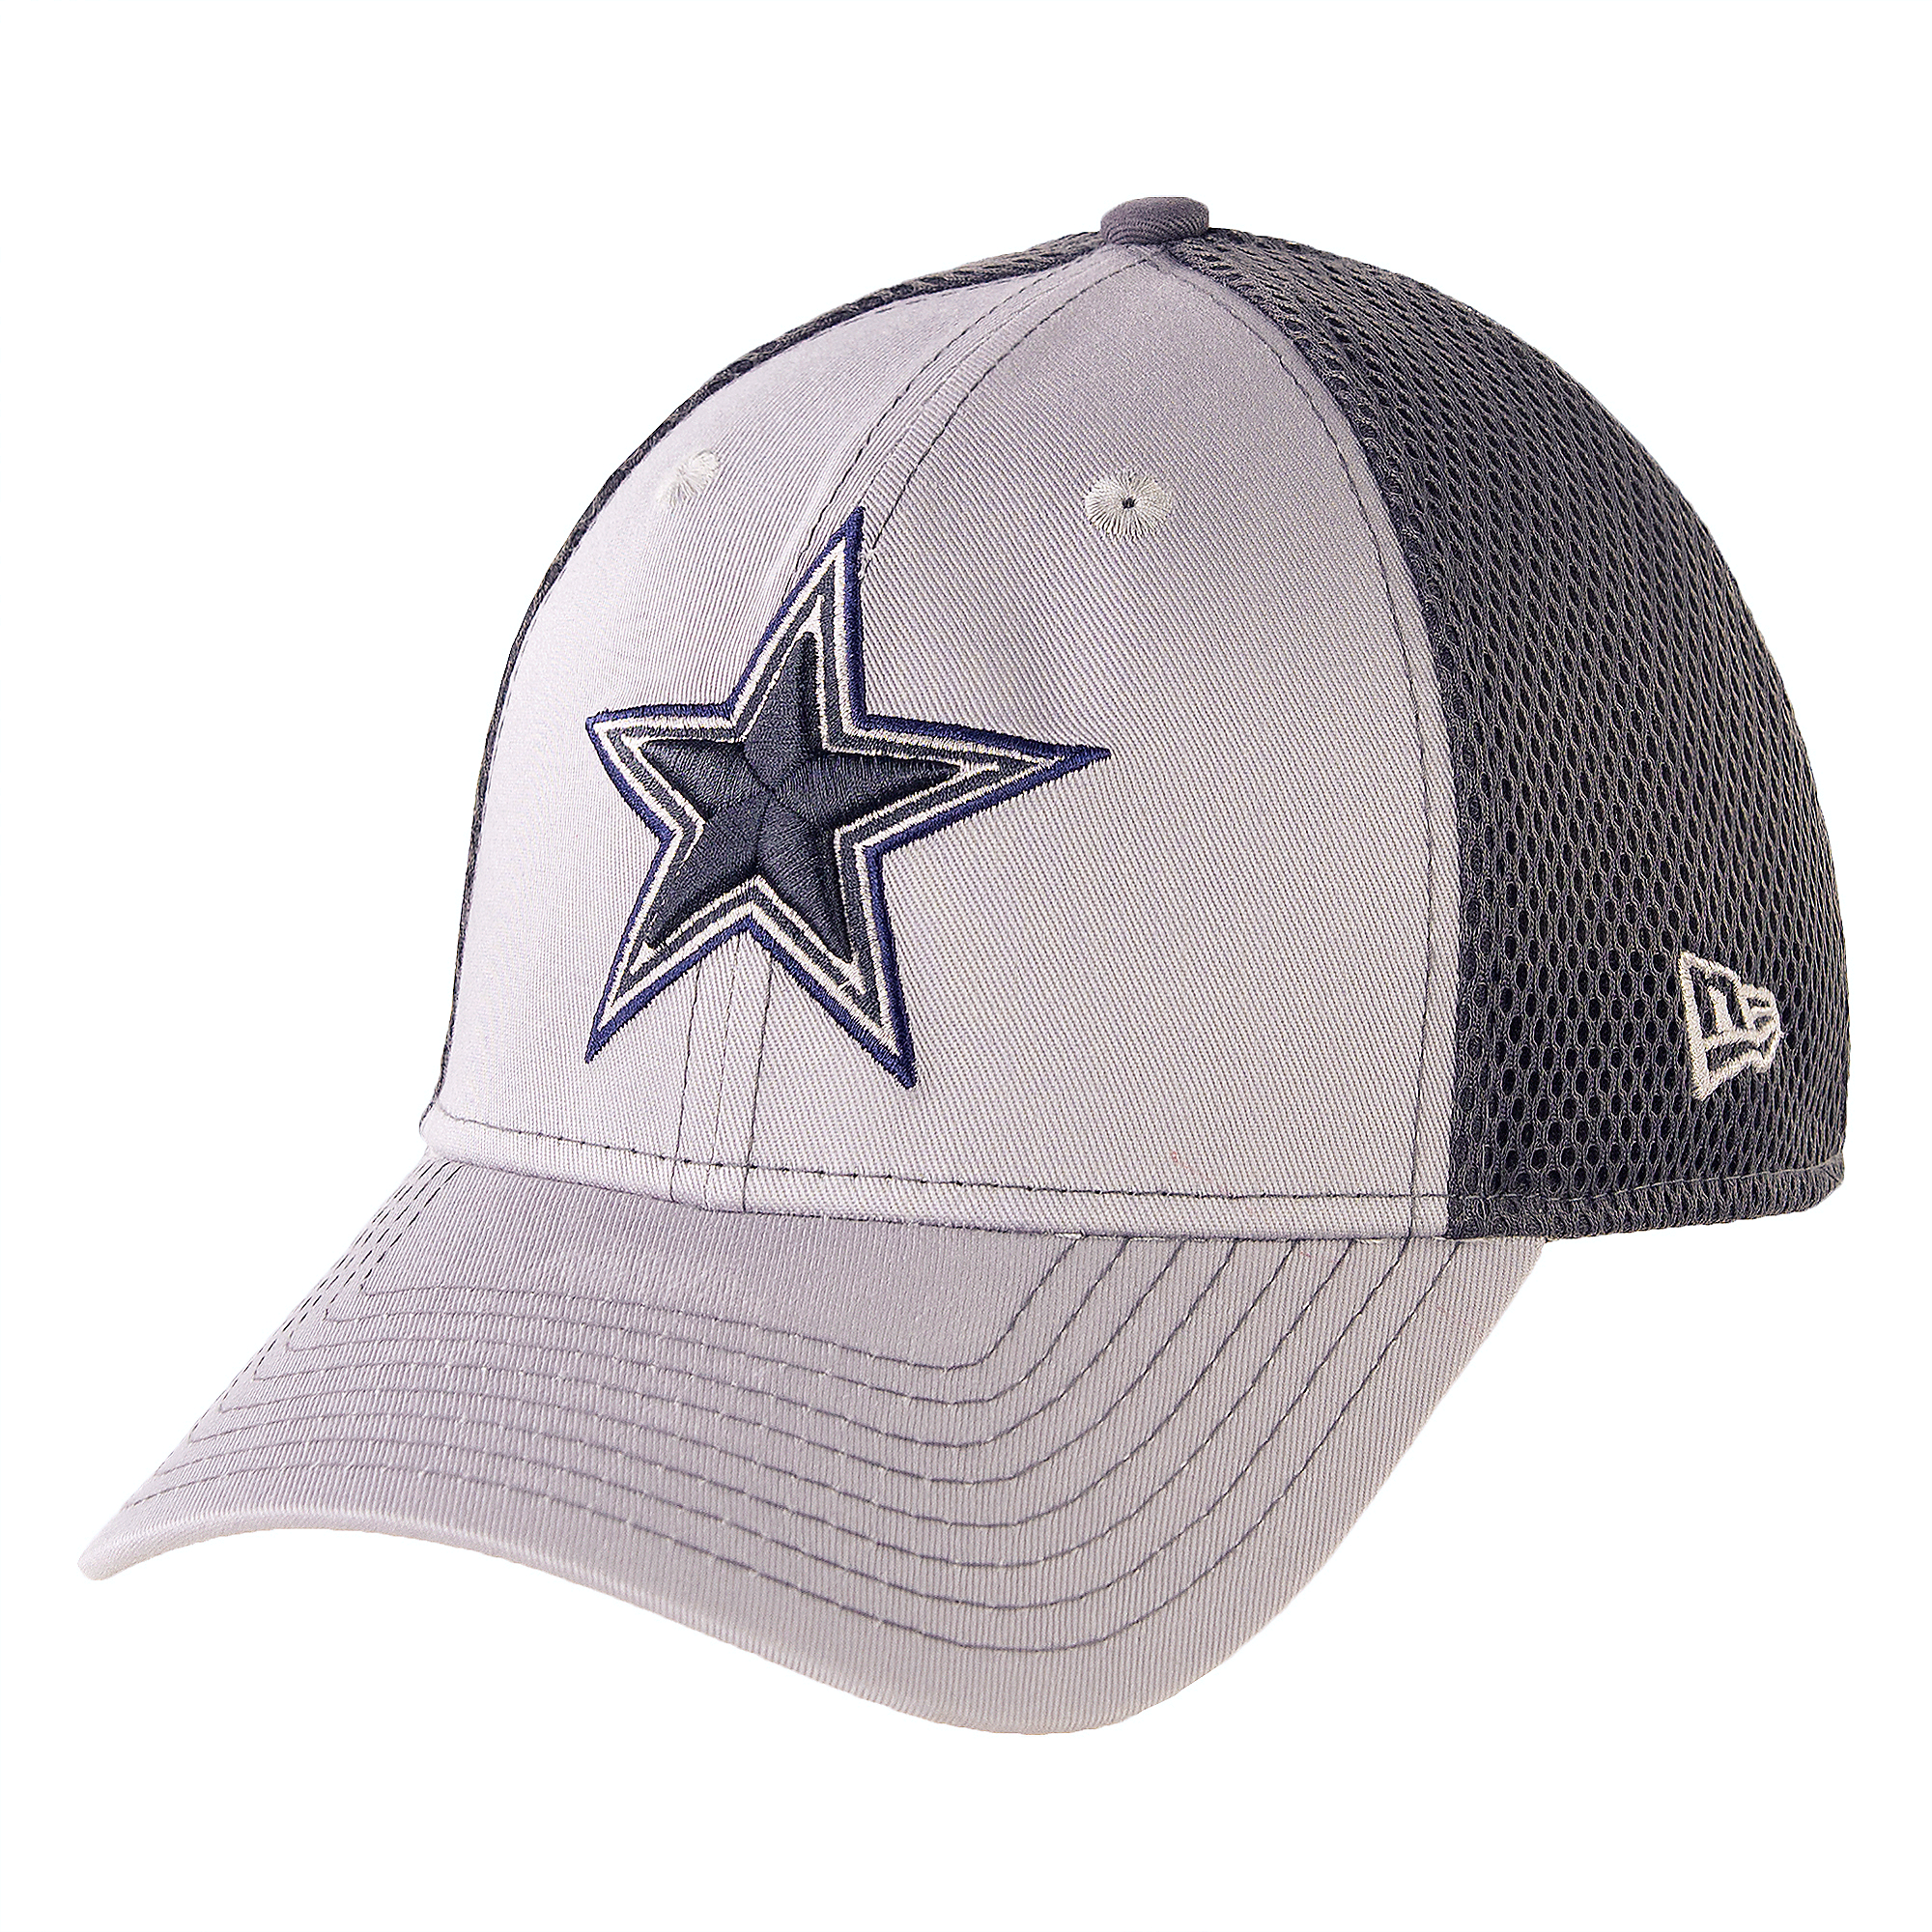 Dallas Cowboys New Era Greyed Out Neo 2 39Thirty Hat